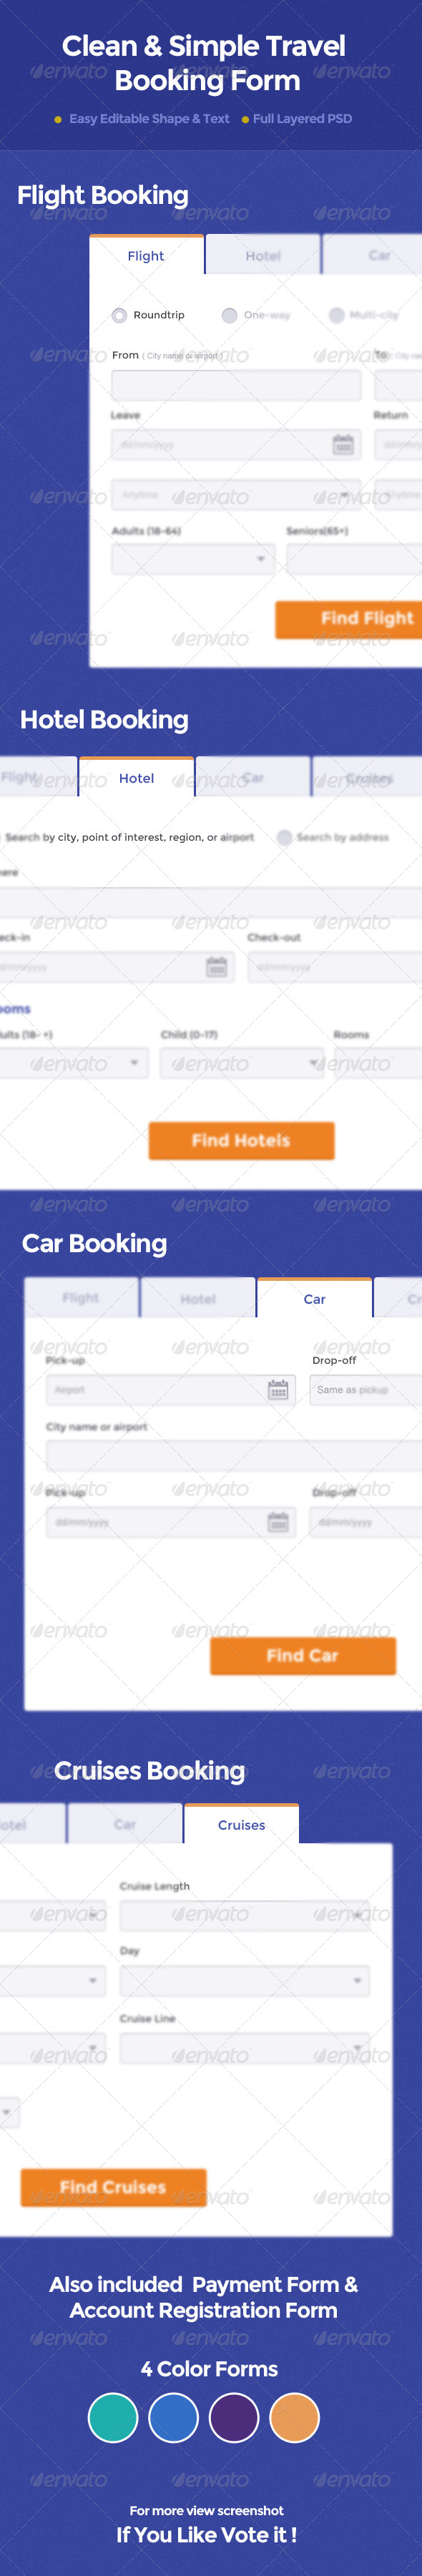 GraphicRiver Clean & Simple Travel Booking Form 4859257